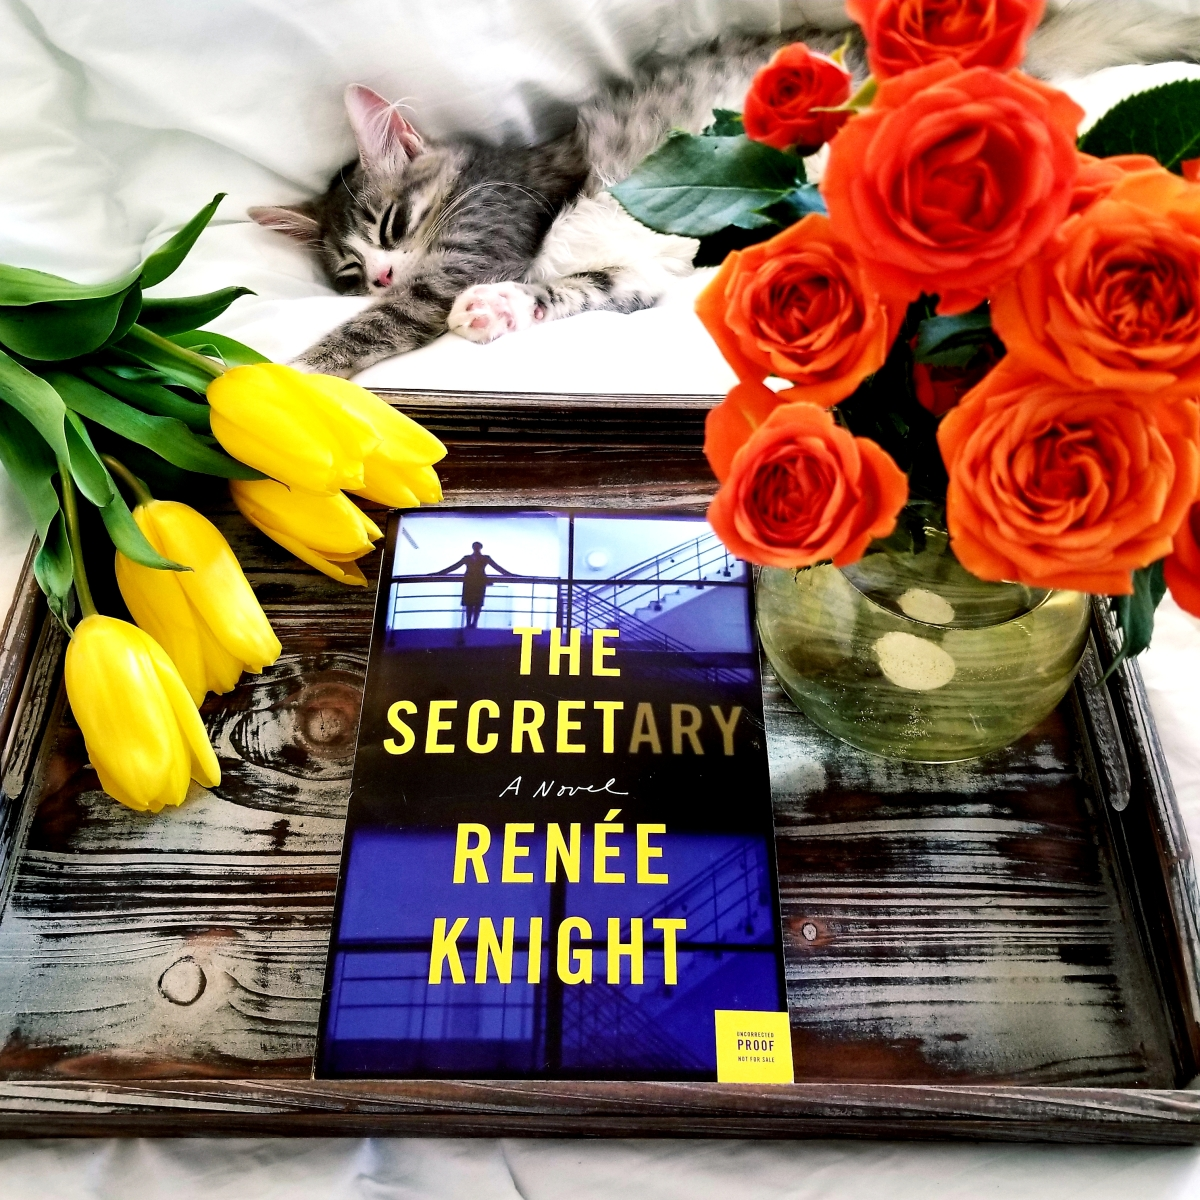 The Secretary by Renee Knight #bookreview #tarheelreader #thrthesecretary #reneeknight @harperbooks #thesecretary